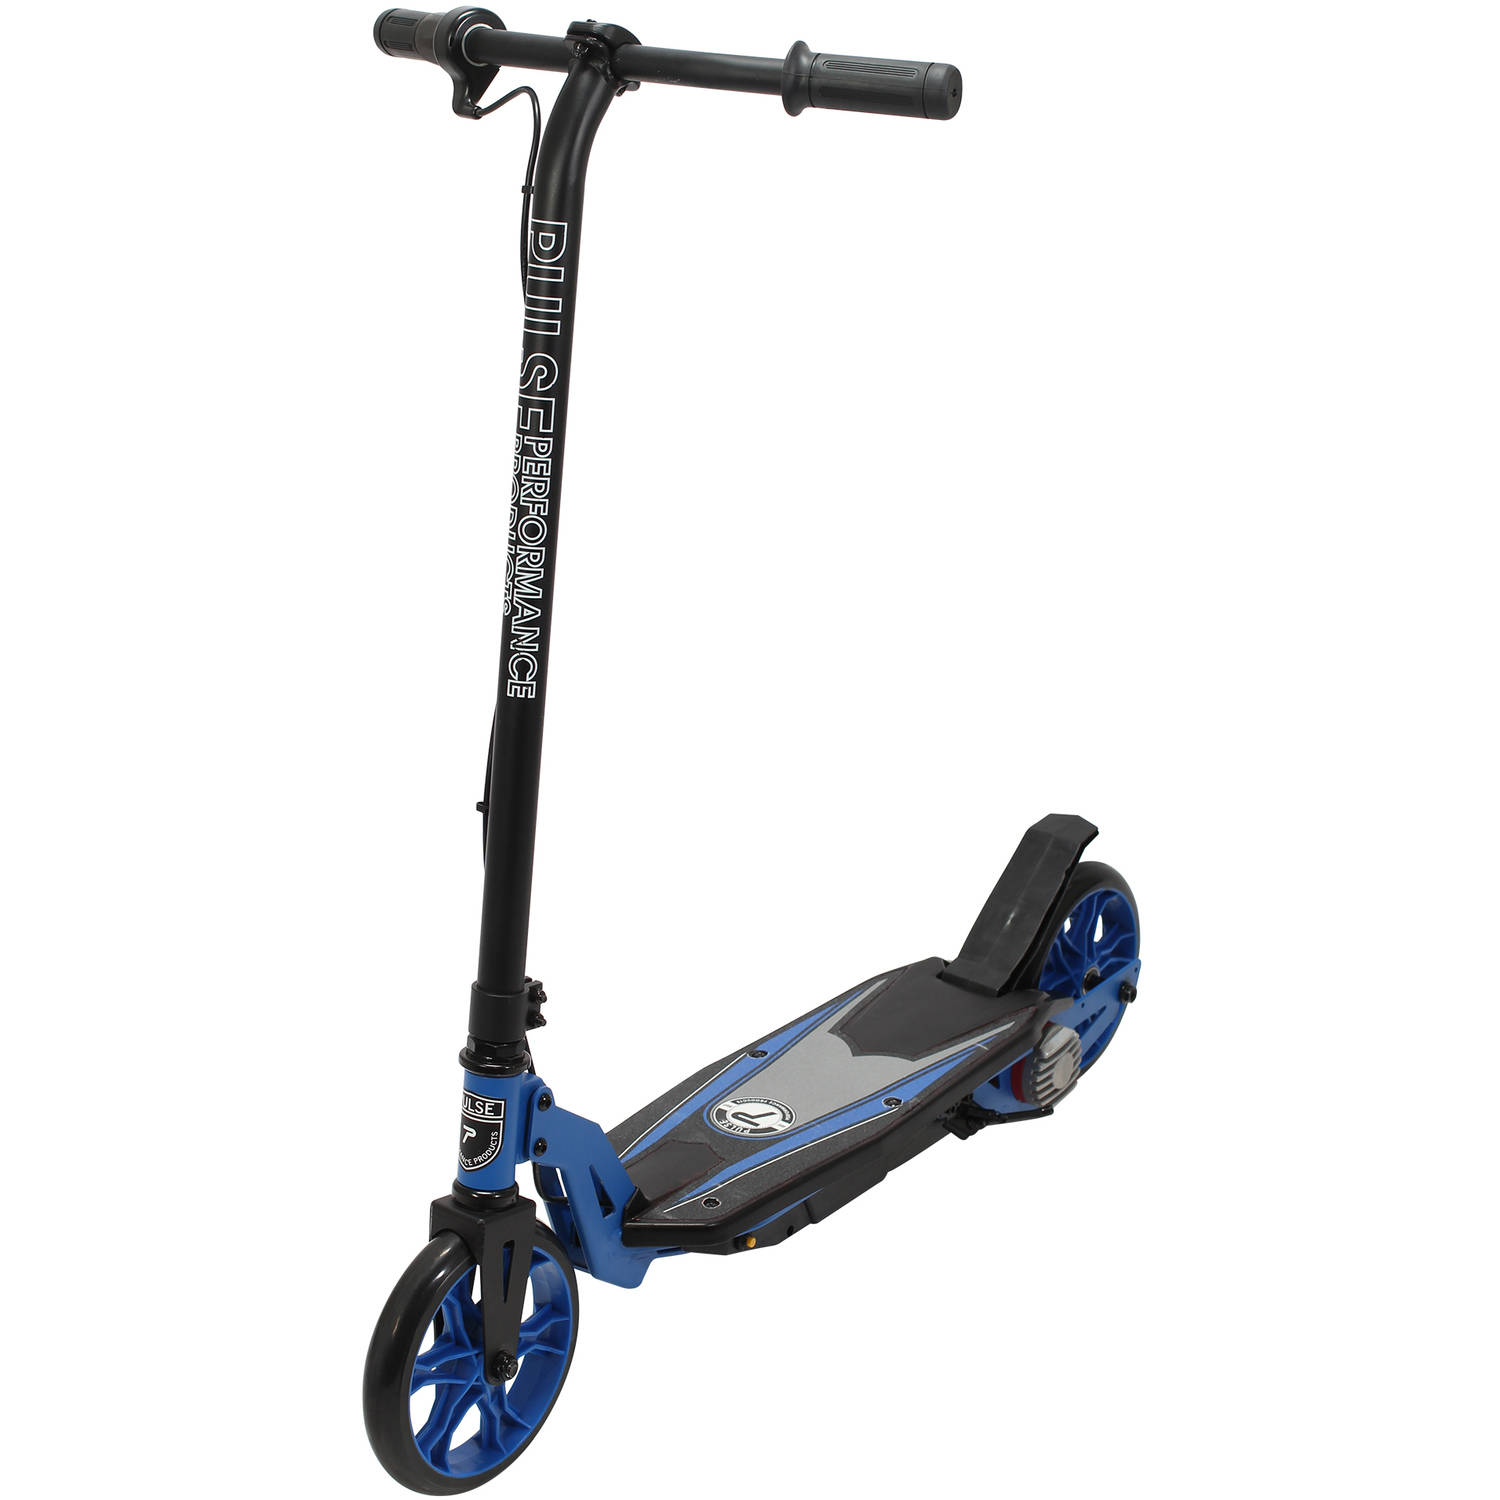 Pulse Performance Products RF-200 Rechargeable Electric Scooter by Generic